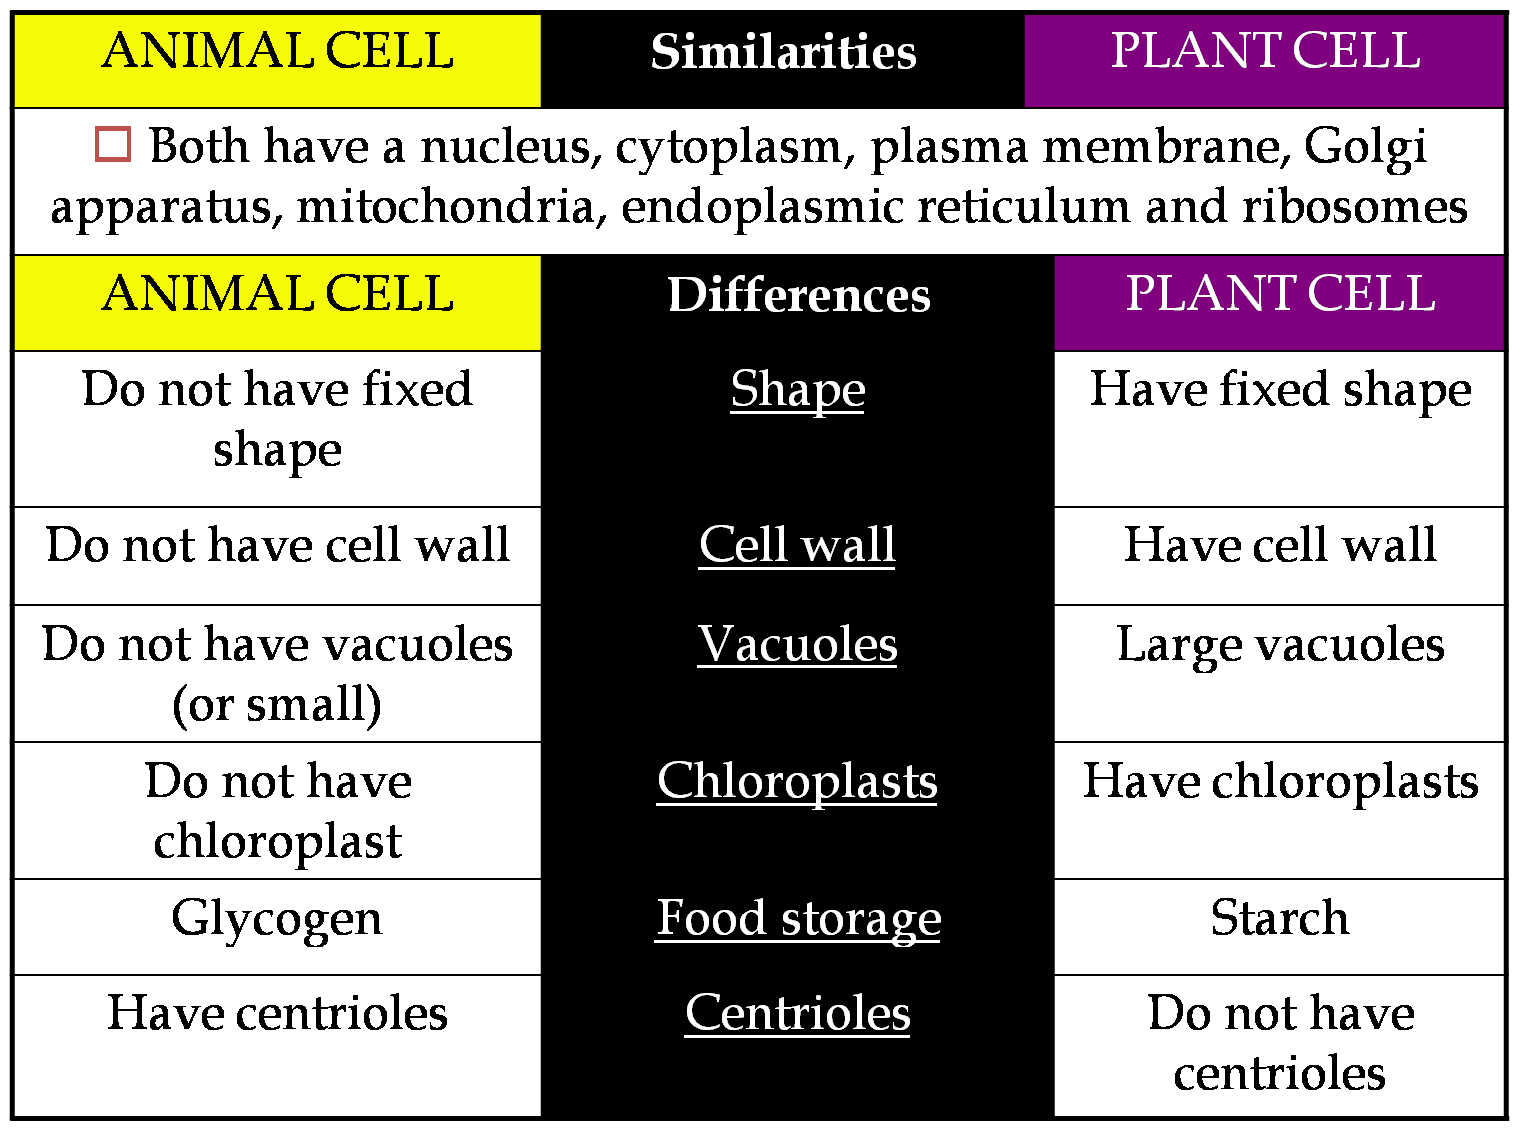 BIOLOGY IS FUN: COMPARISON BETWEEN ANIMAL CELL AND PLANT CELL